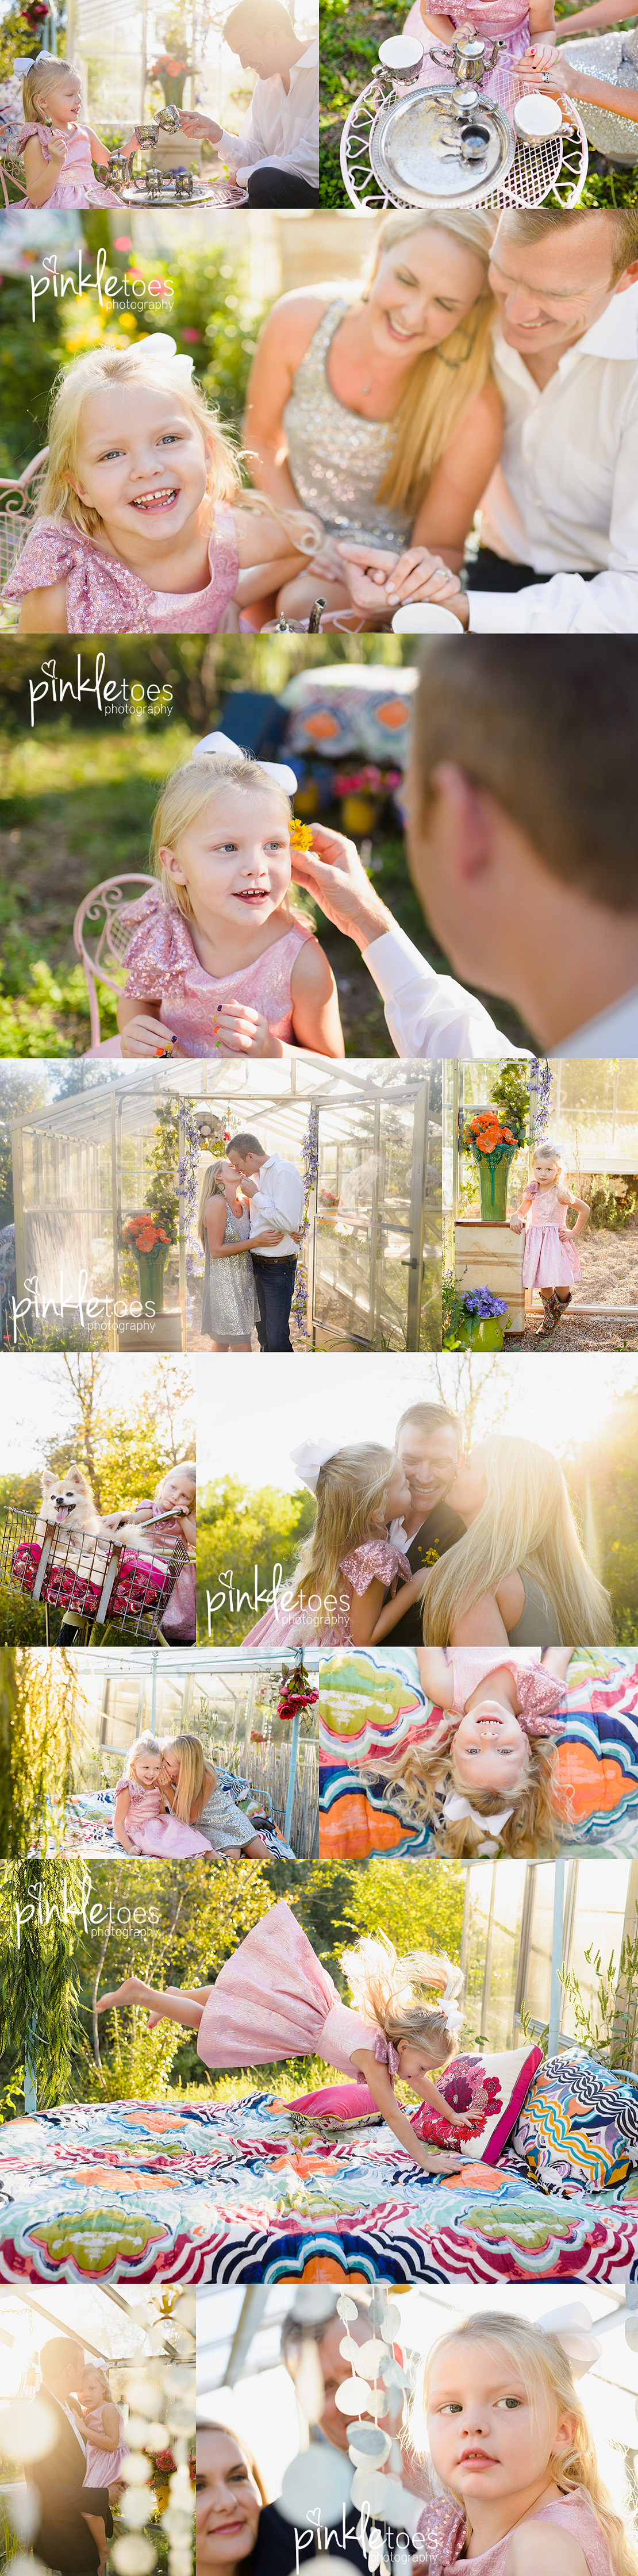 austin-family-photography-photo-session-child-girl-in-greenhouse-dog-wildflowers-texas